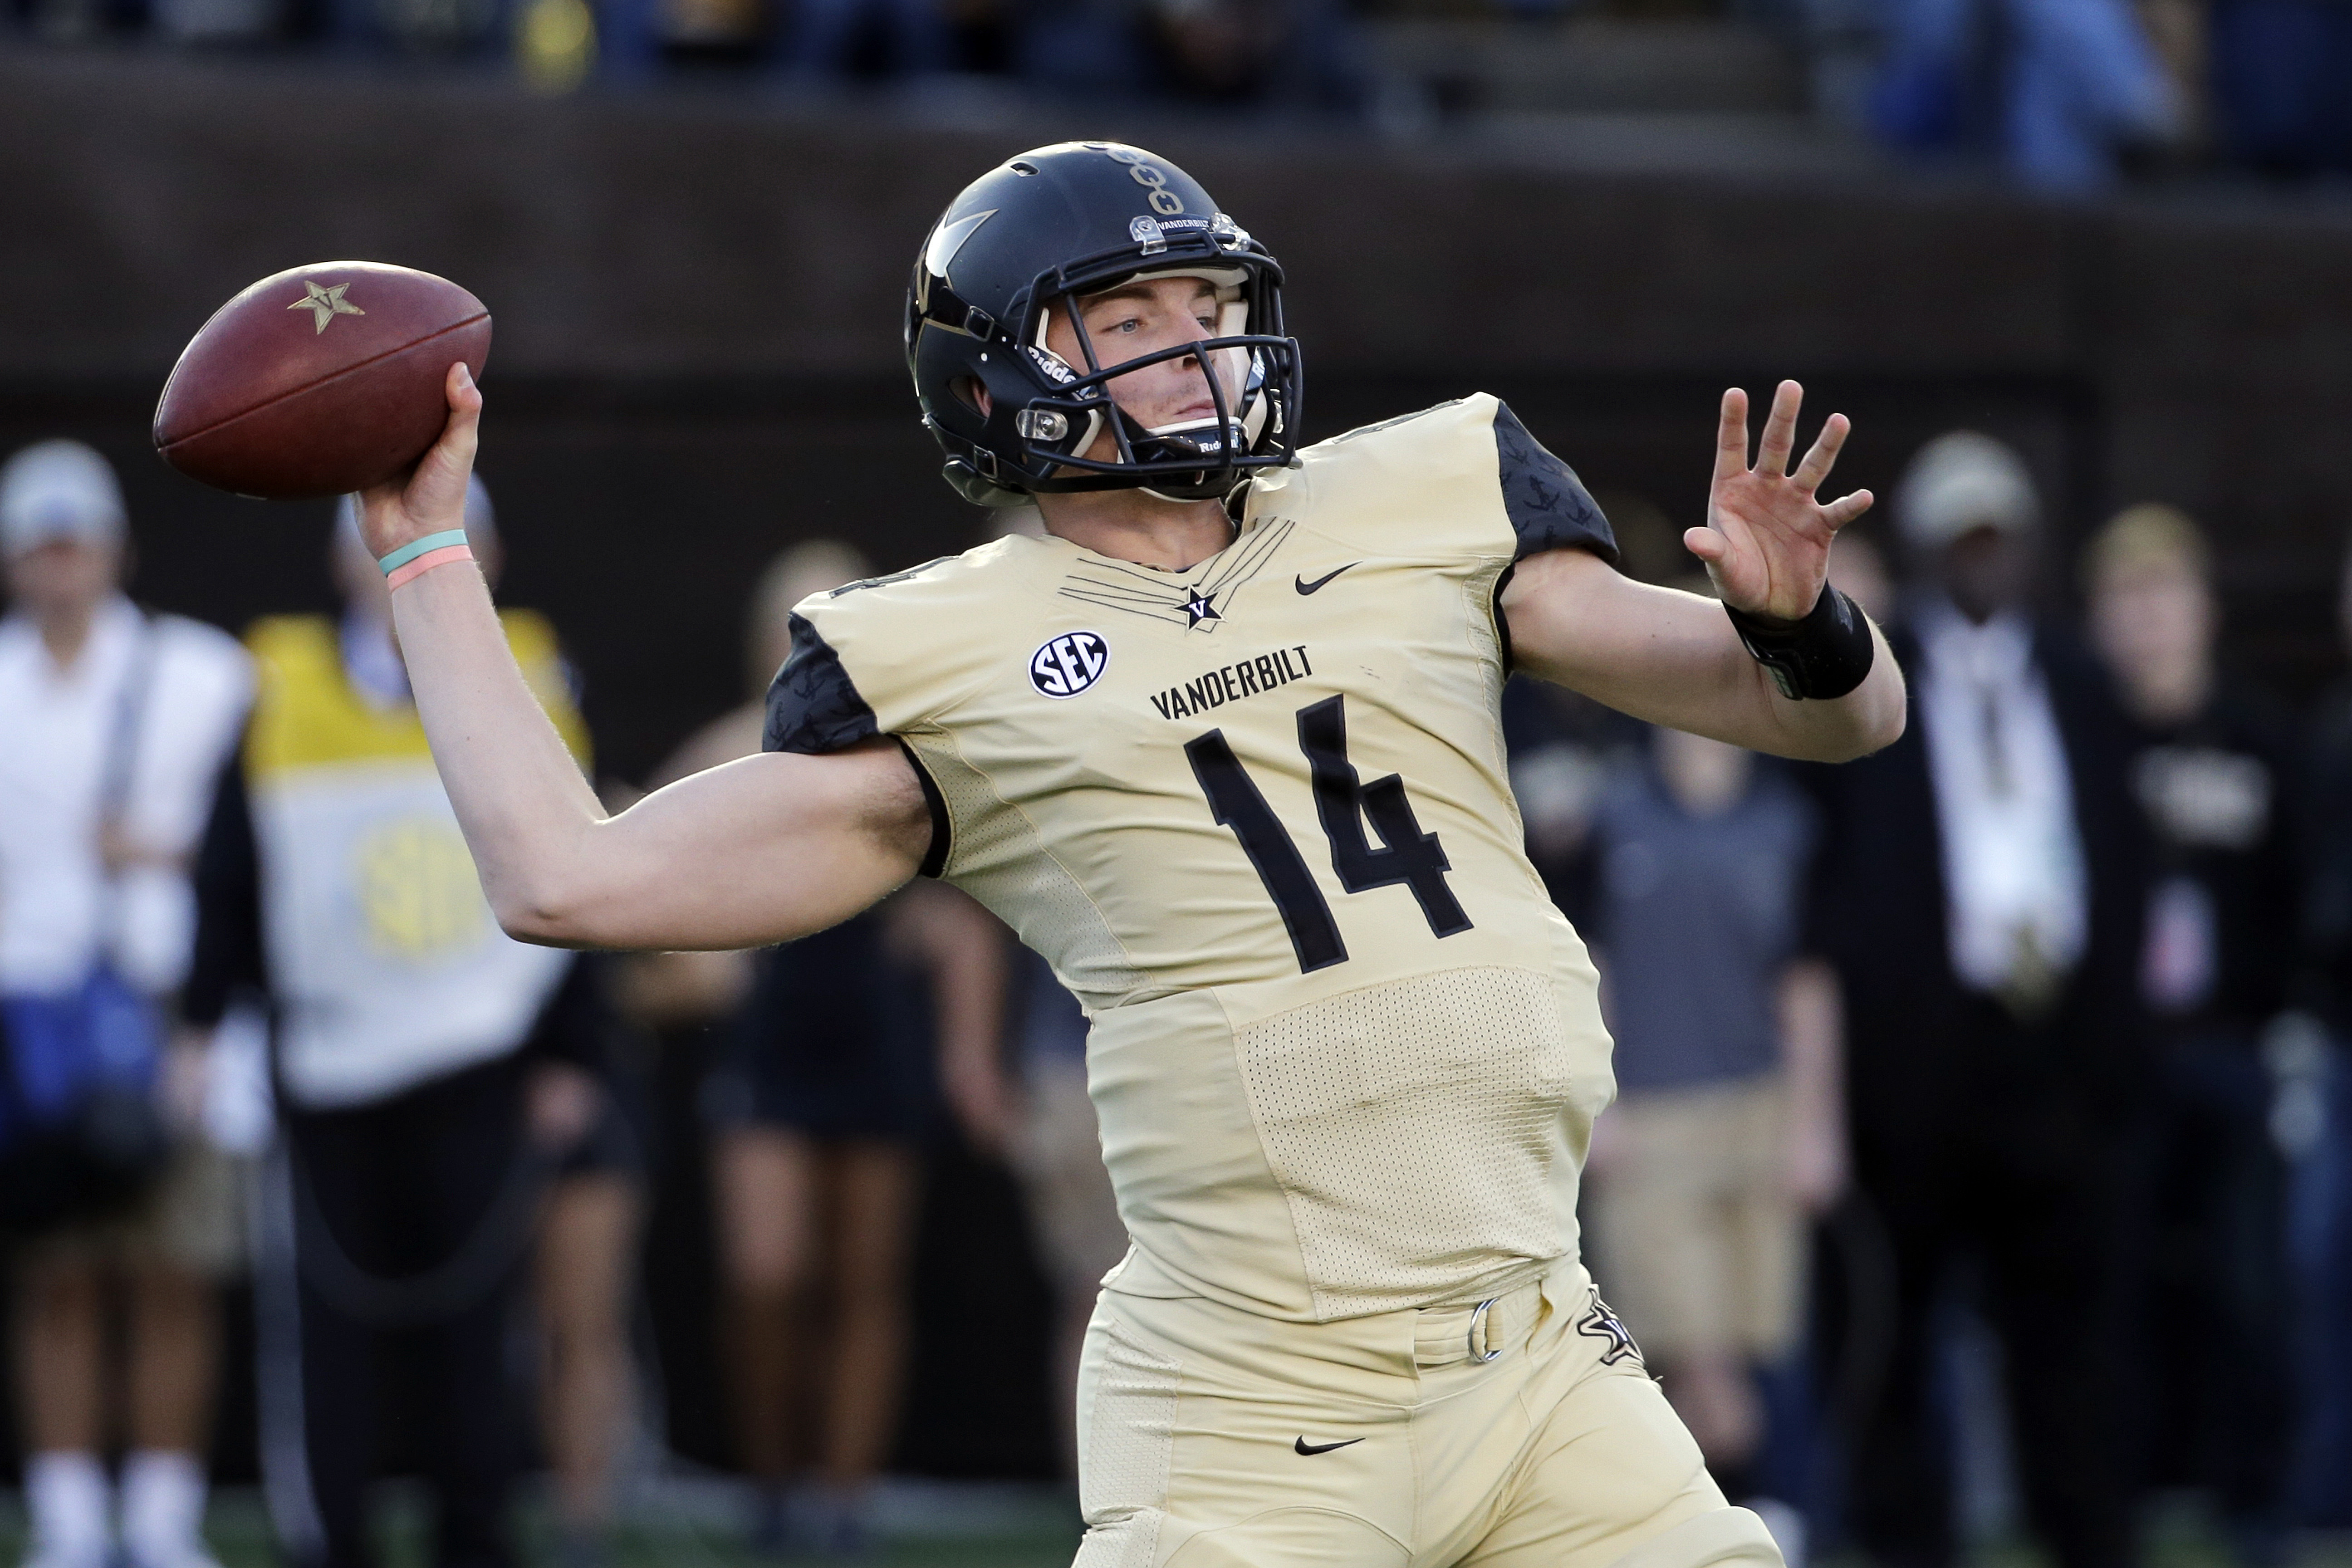 FILE - In this Nov. 14, 2015, file photo, Vanderbilt quarterback Kyle Shurmur passes against Kentucky in the first half of an NCAA college football game, in Nashville, Tenn.  With wins in their last two bowls, Vanderbilt will be heading to the Independenc